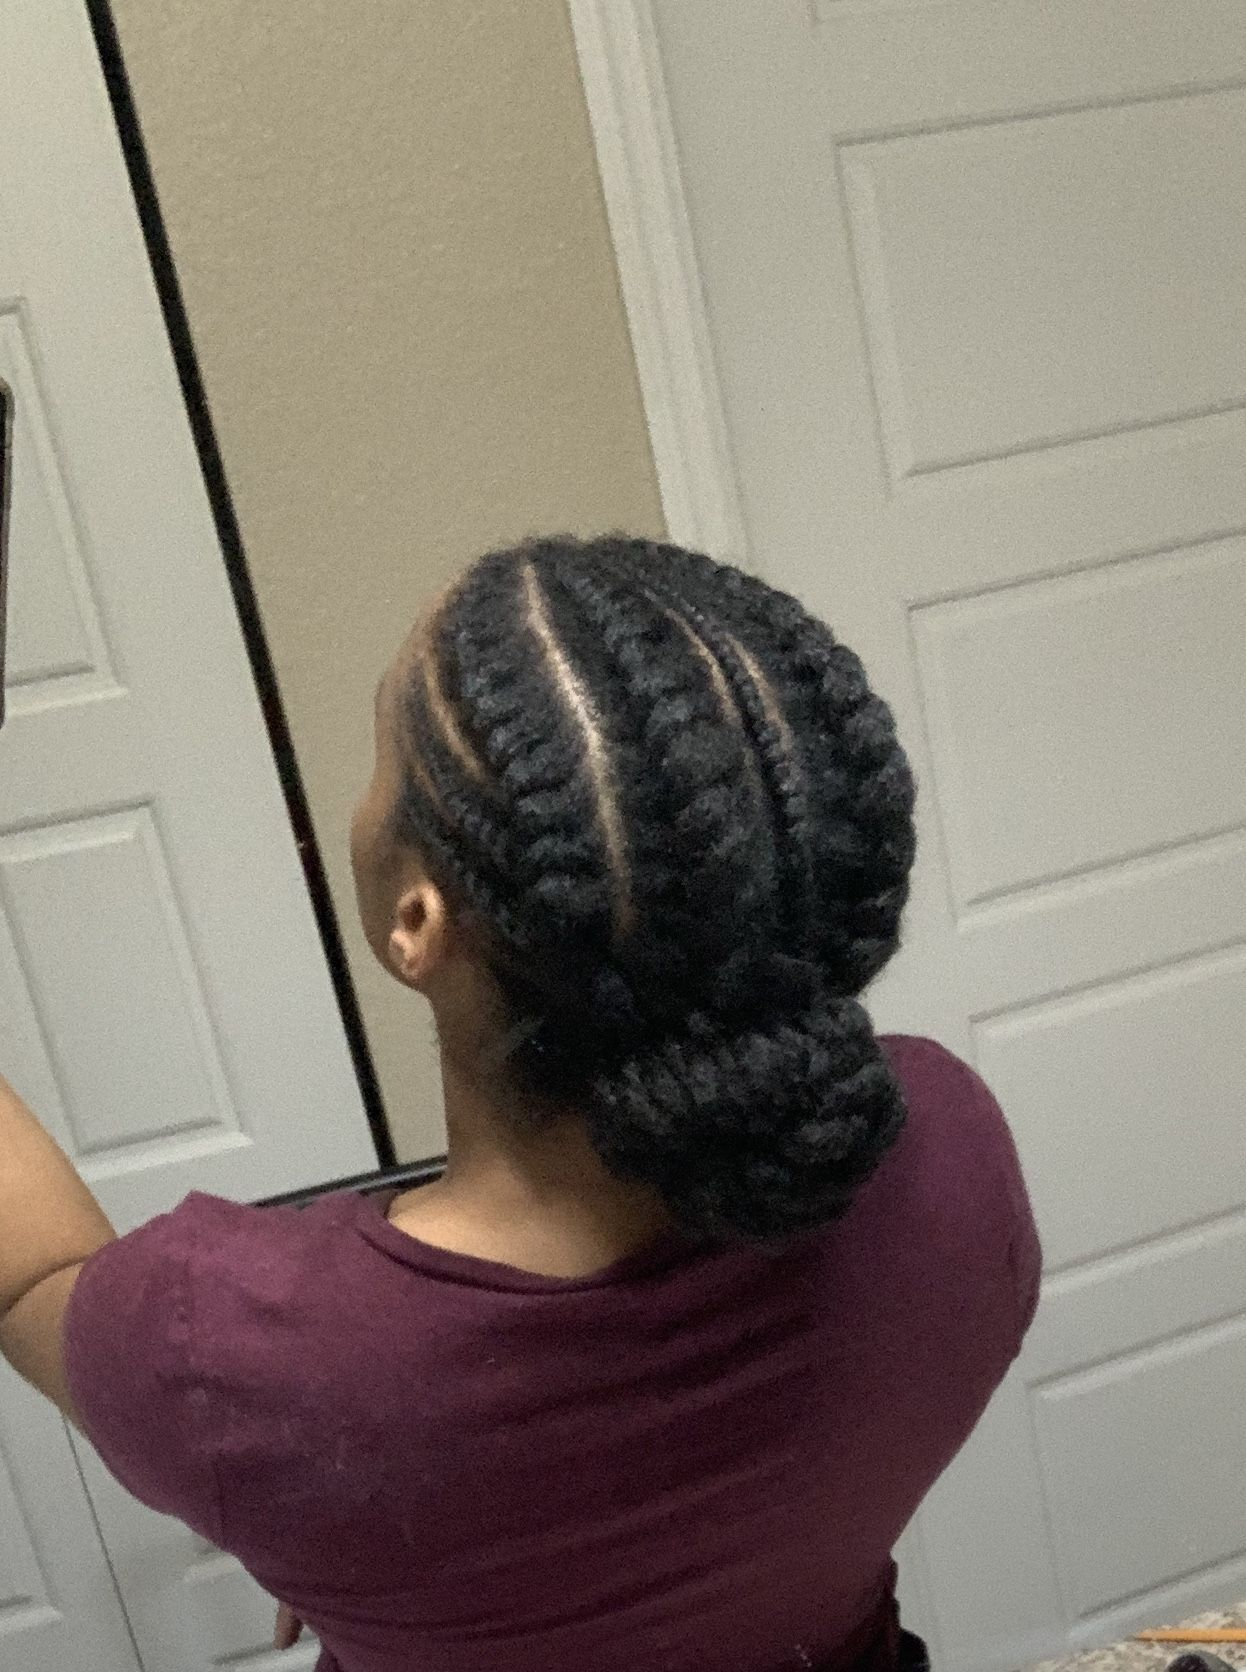 #4chair #naturalhair #naturalhairstyles #protectivehairstyles